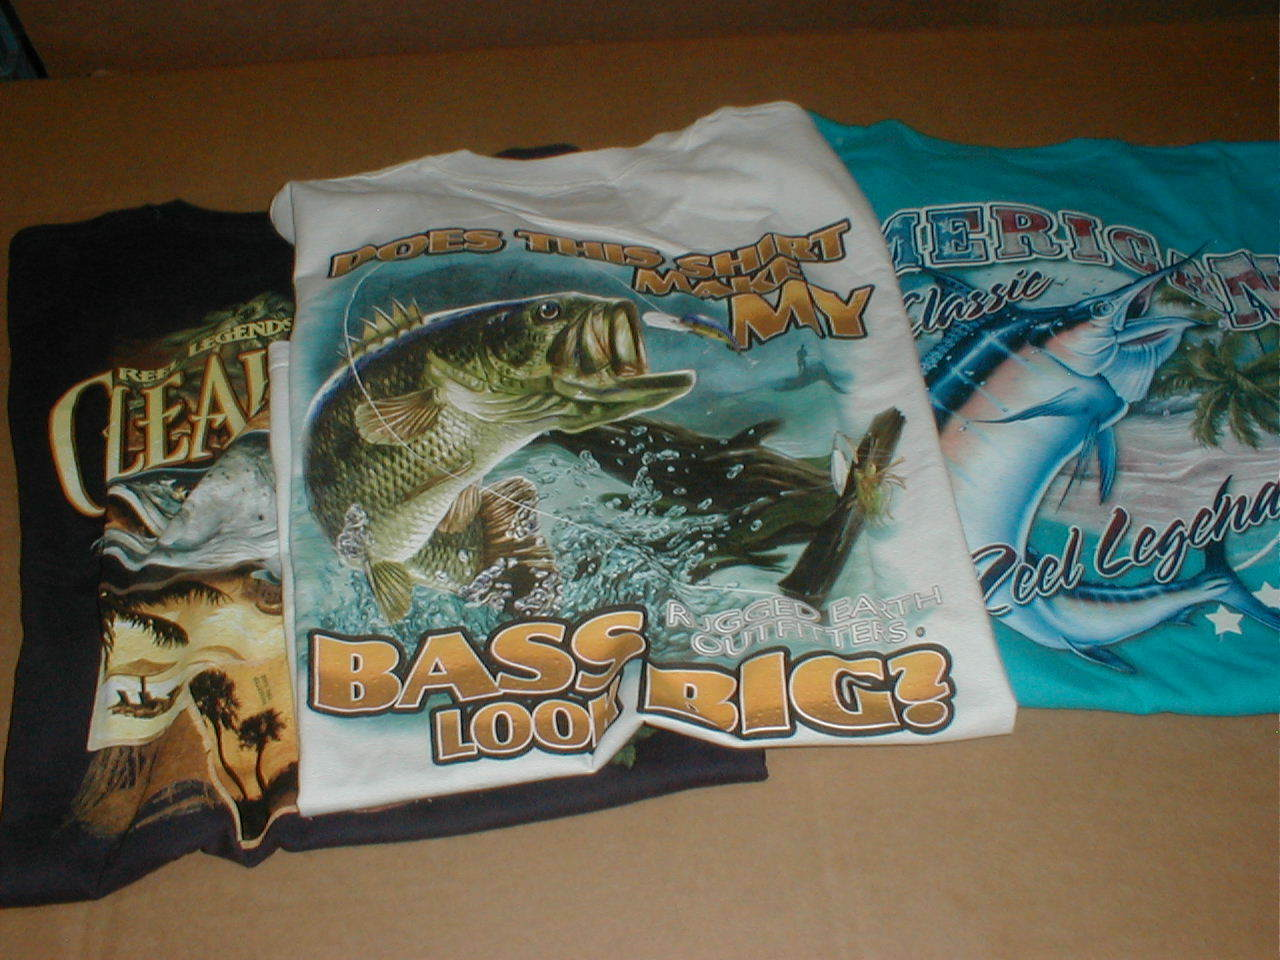 3 Reel Legend Clearwater FL Coast XL T-shirt Fishing NEW short sleeve NOS